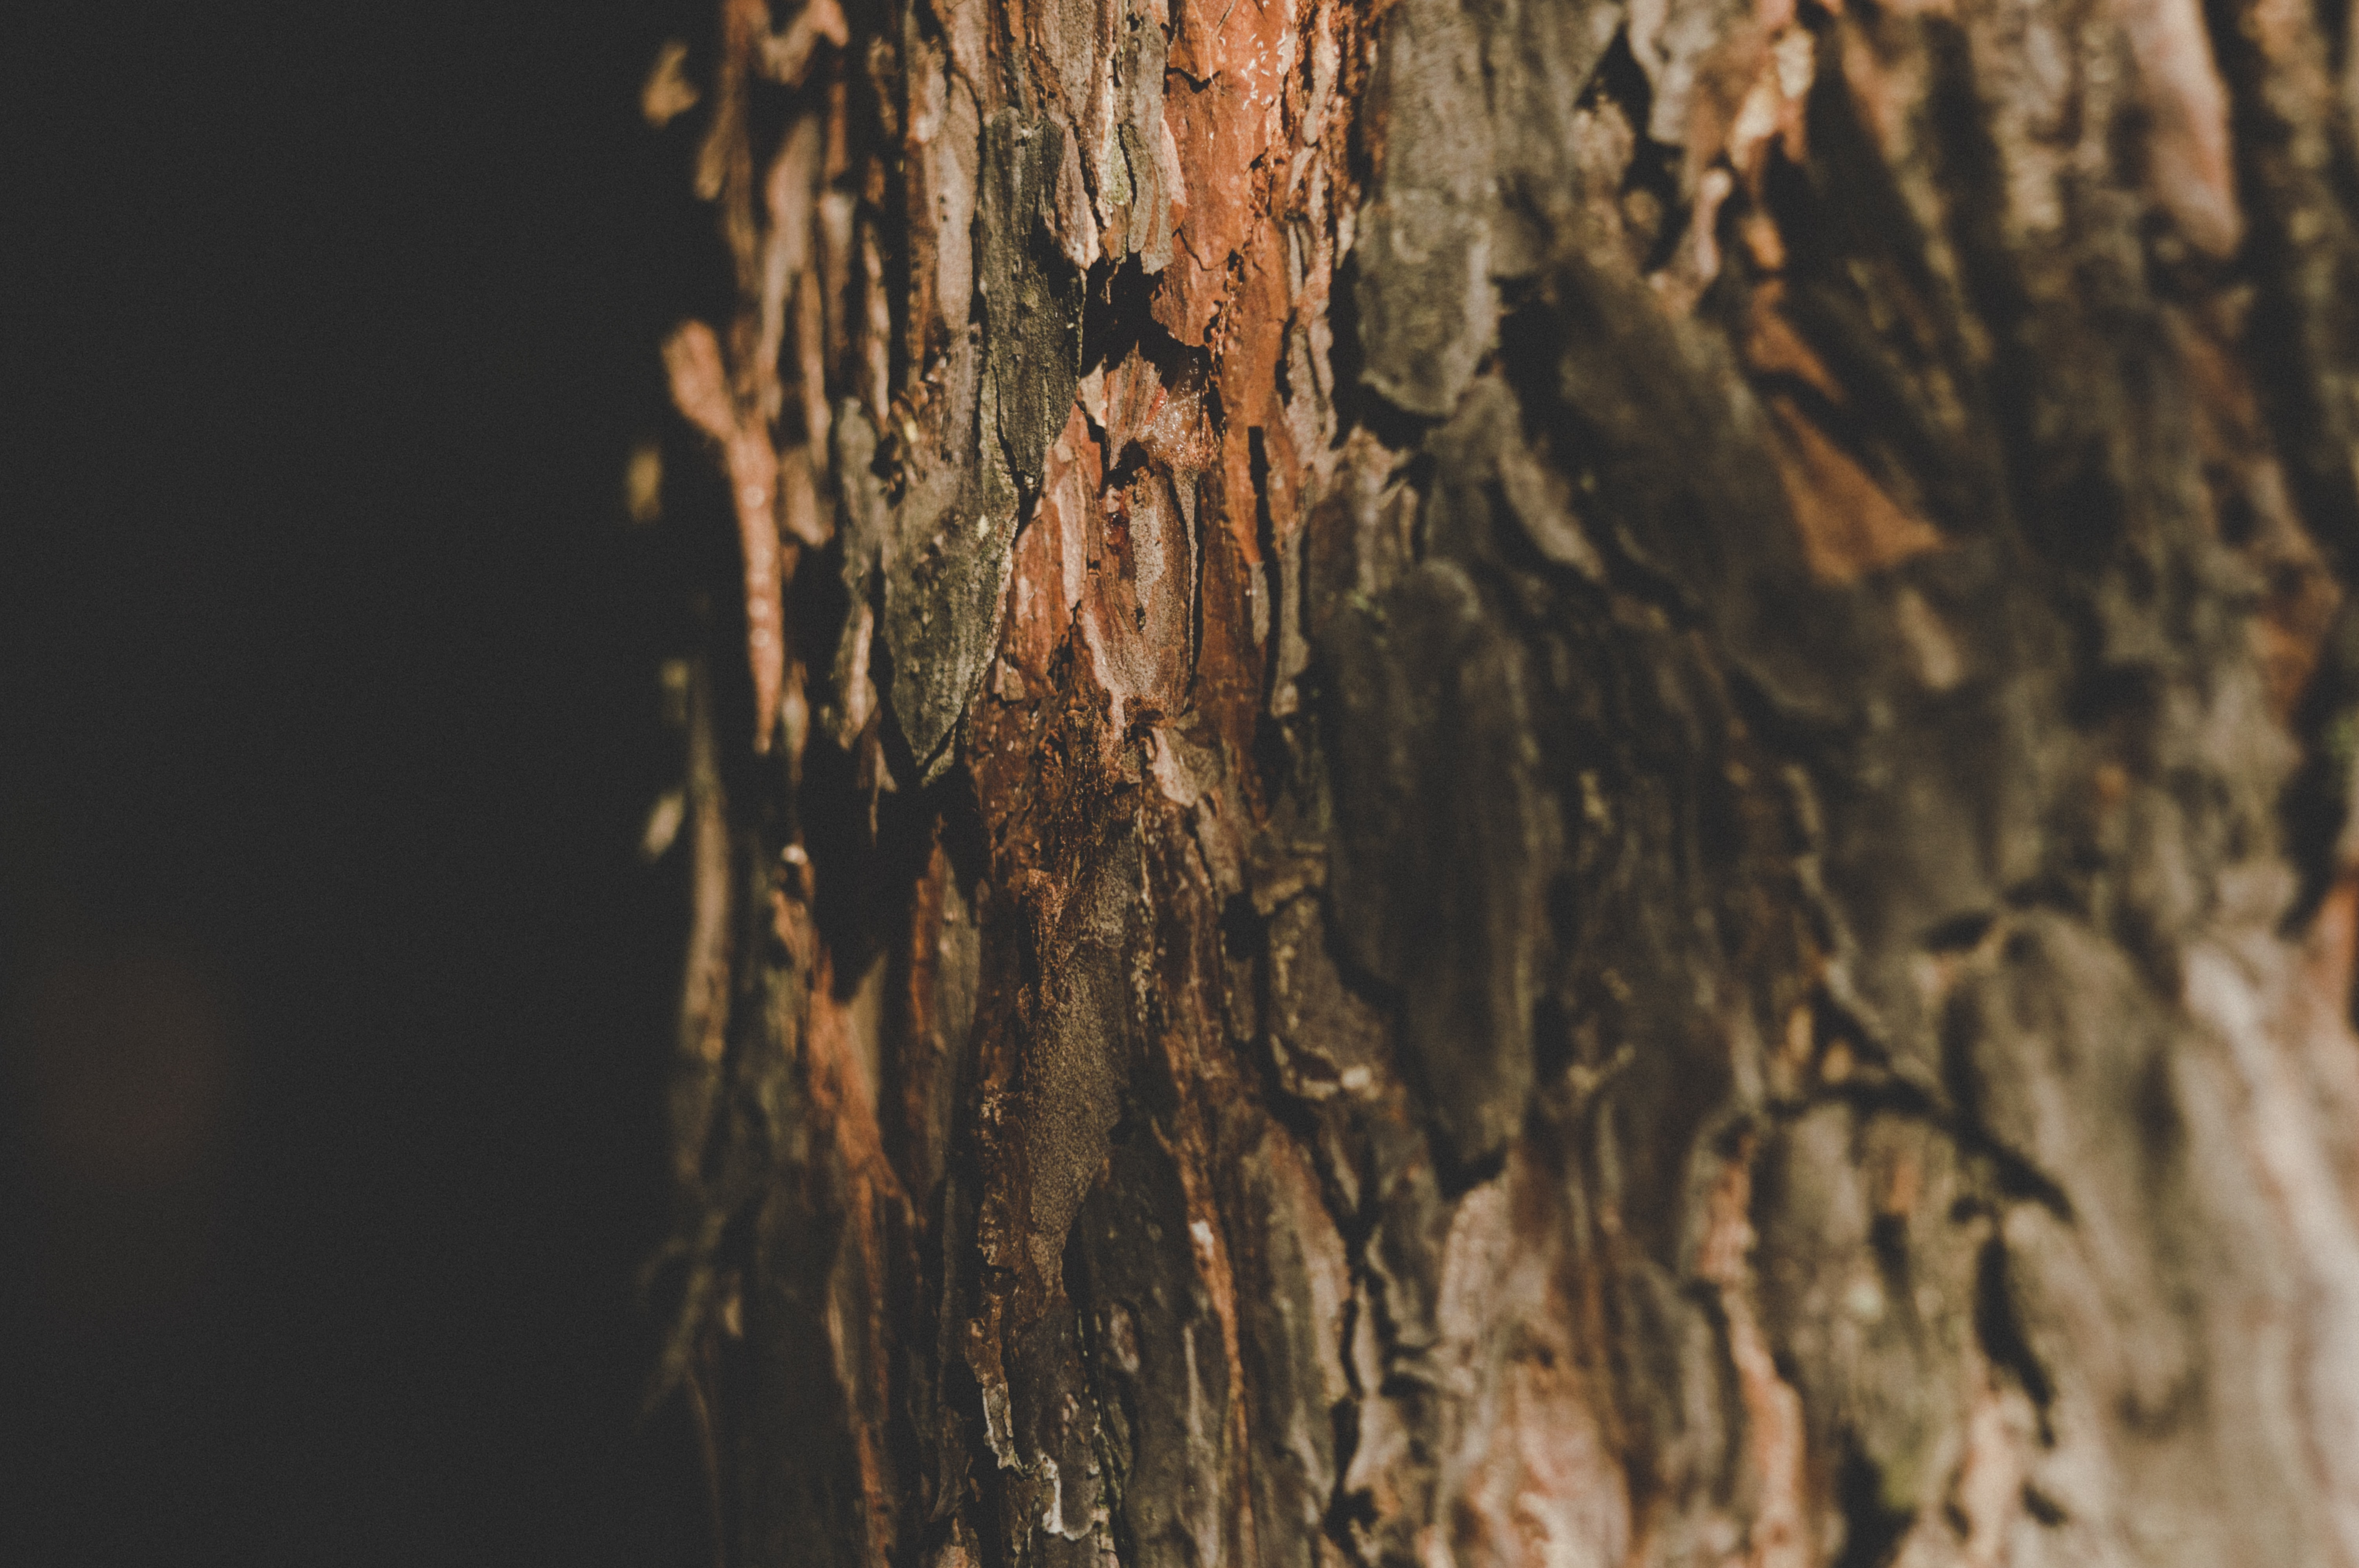 close-up photography of brown tree trunk